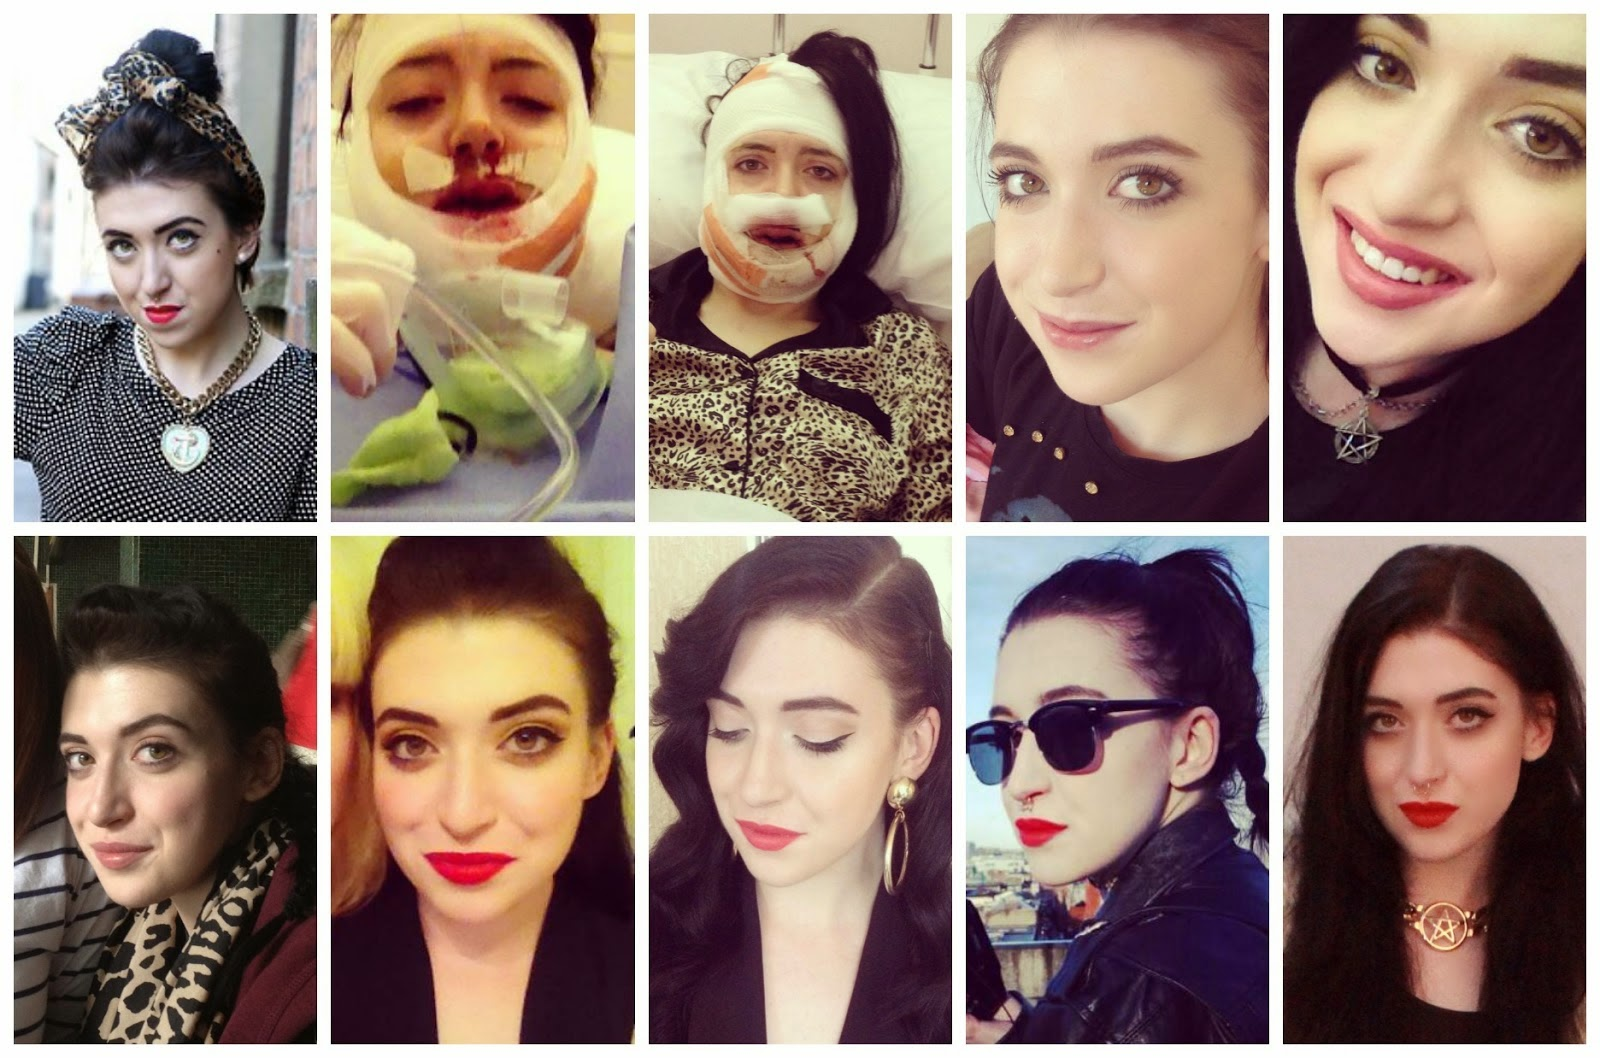 http://thunderandthreads.blogspot.ie/2014/03/my-double-jaw-surgery-experience-one.html